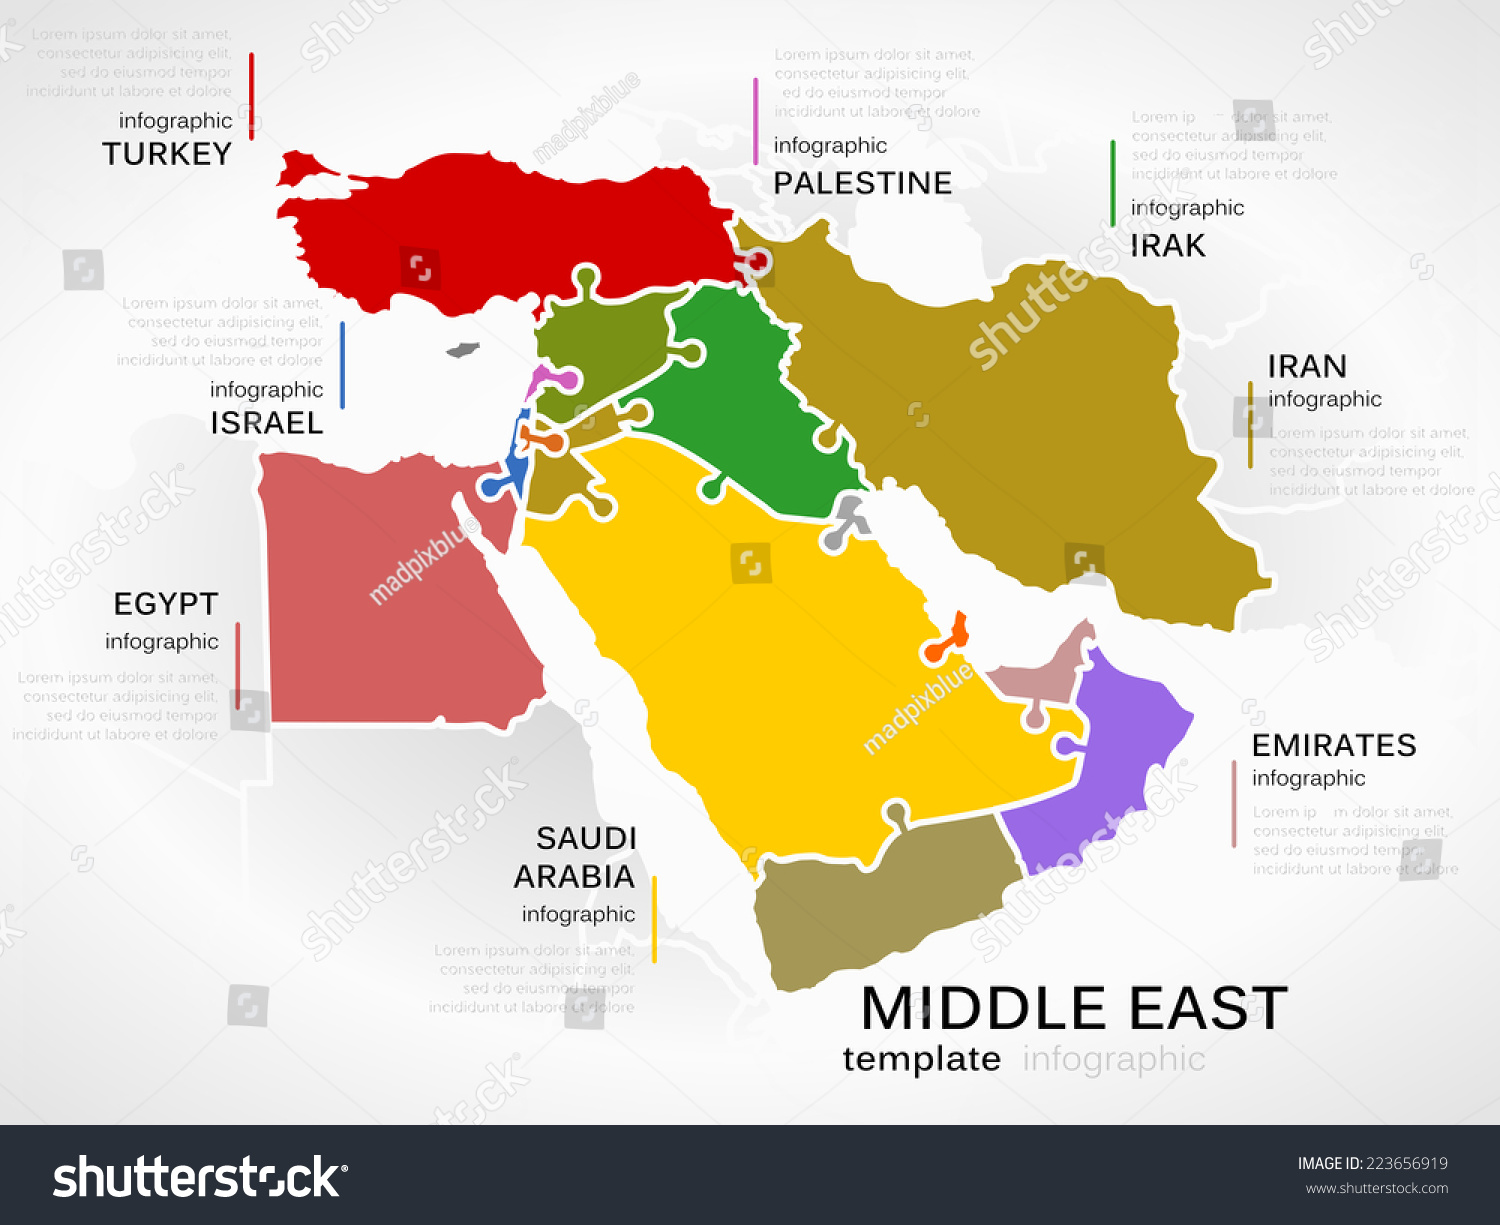 Middle East Map Concept Infographic Template Stock Vector - Middle east map